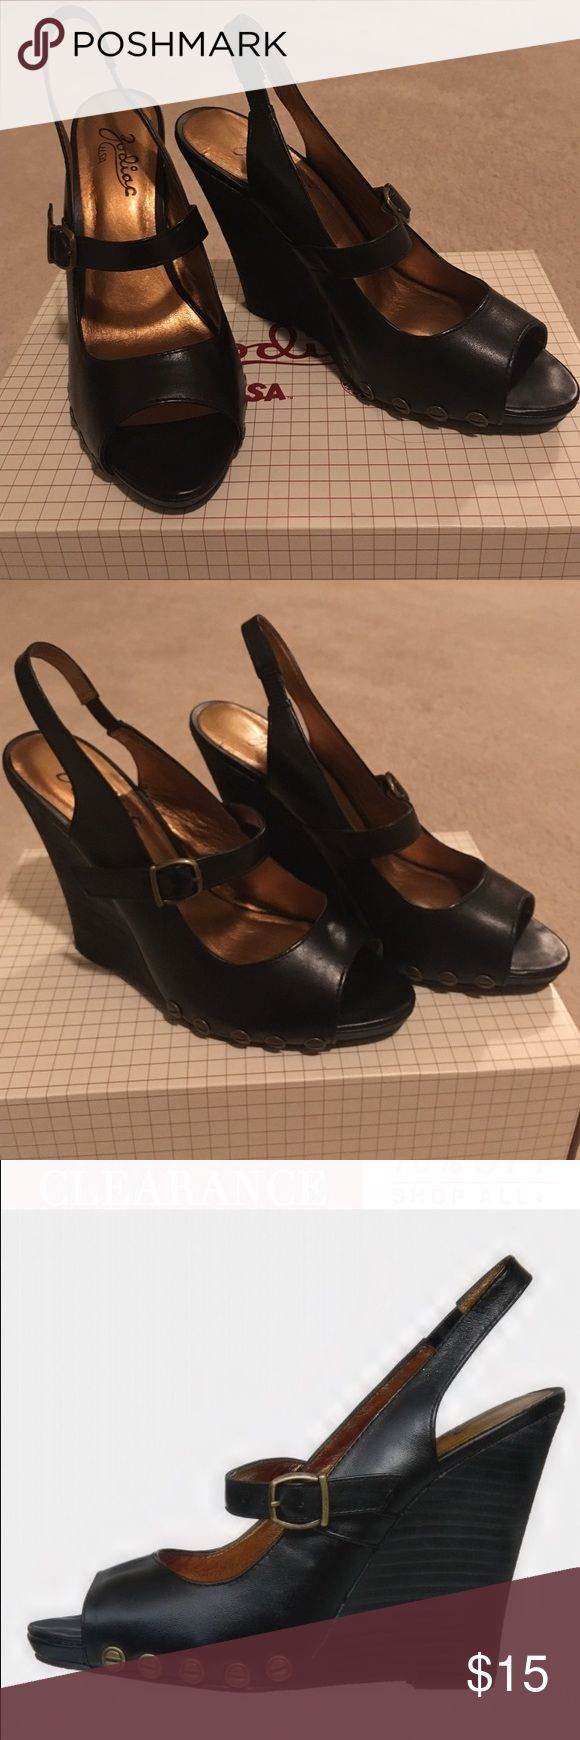 Black leather wedge Black leather wedge sandal Shoes Sandals